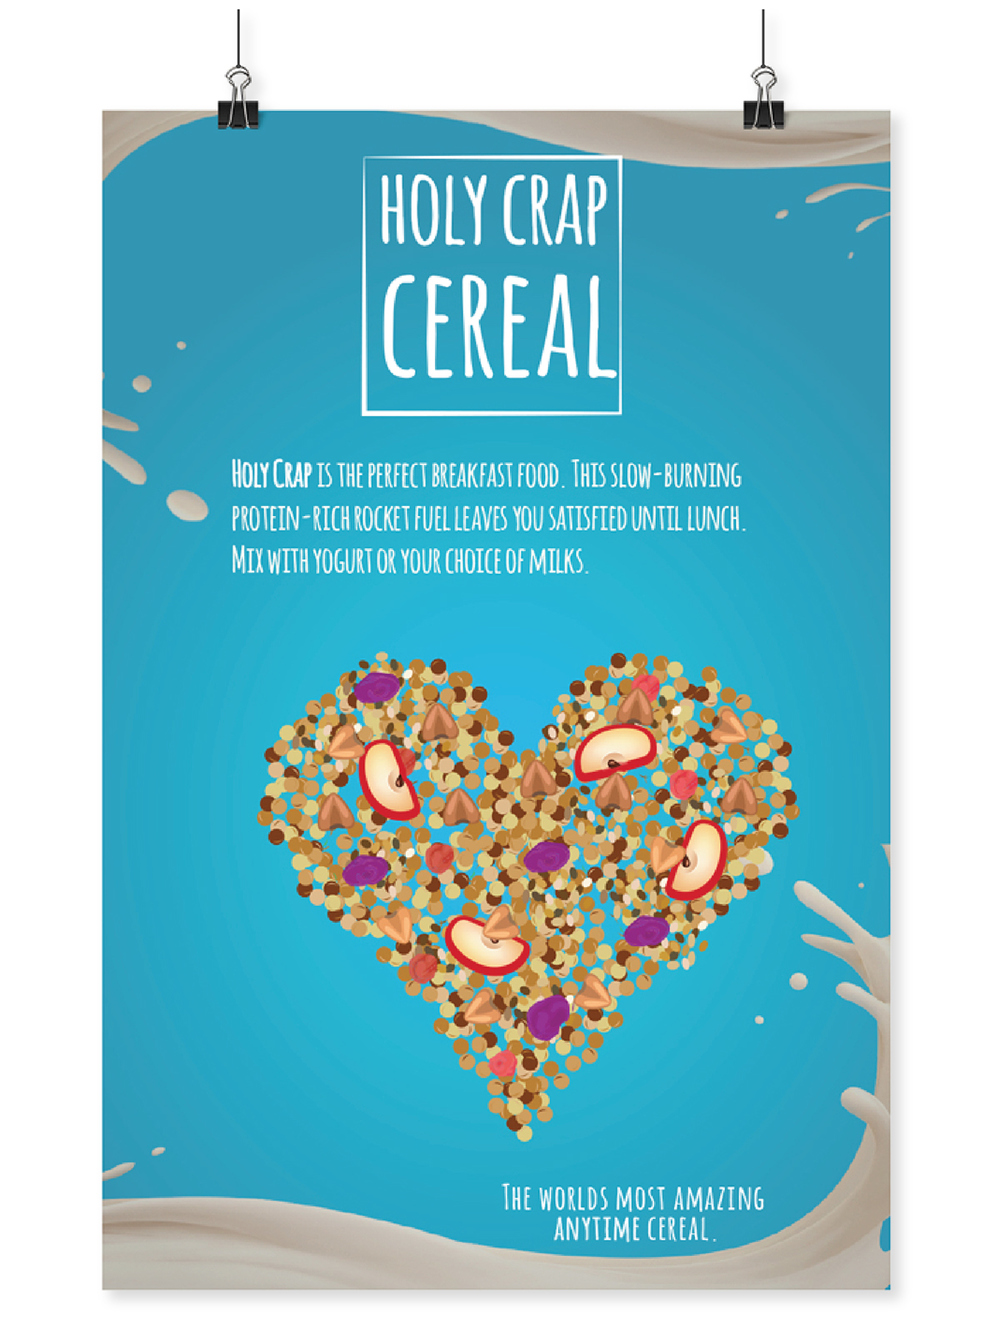 Holy Crap Cereal Poster